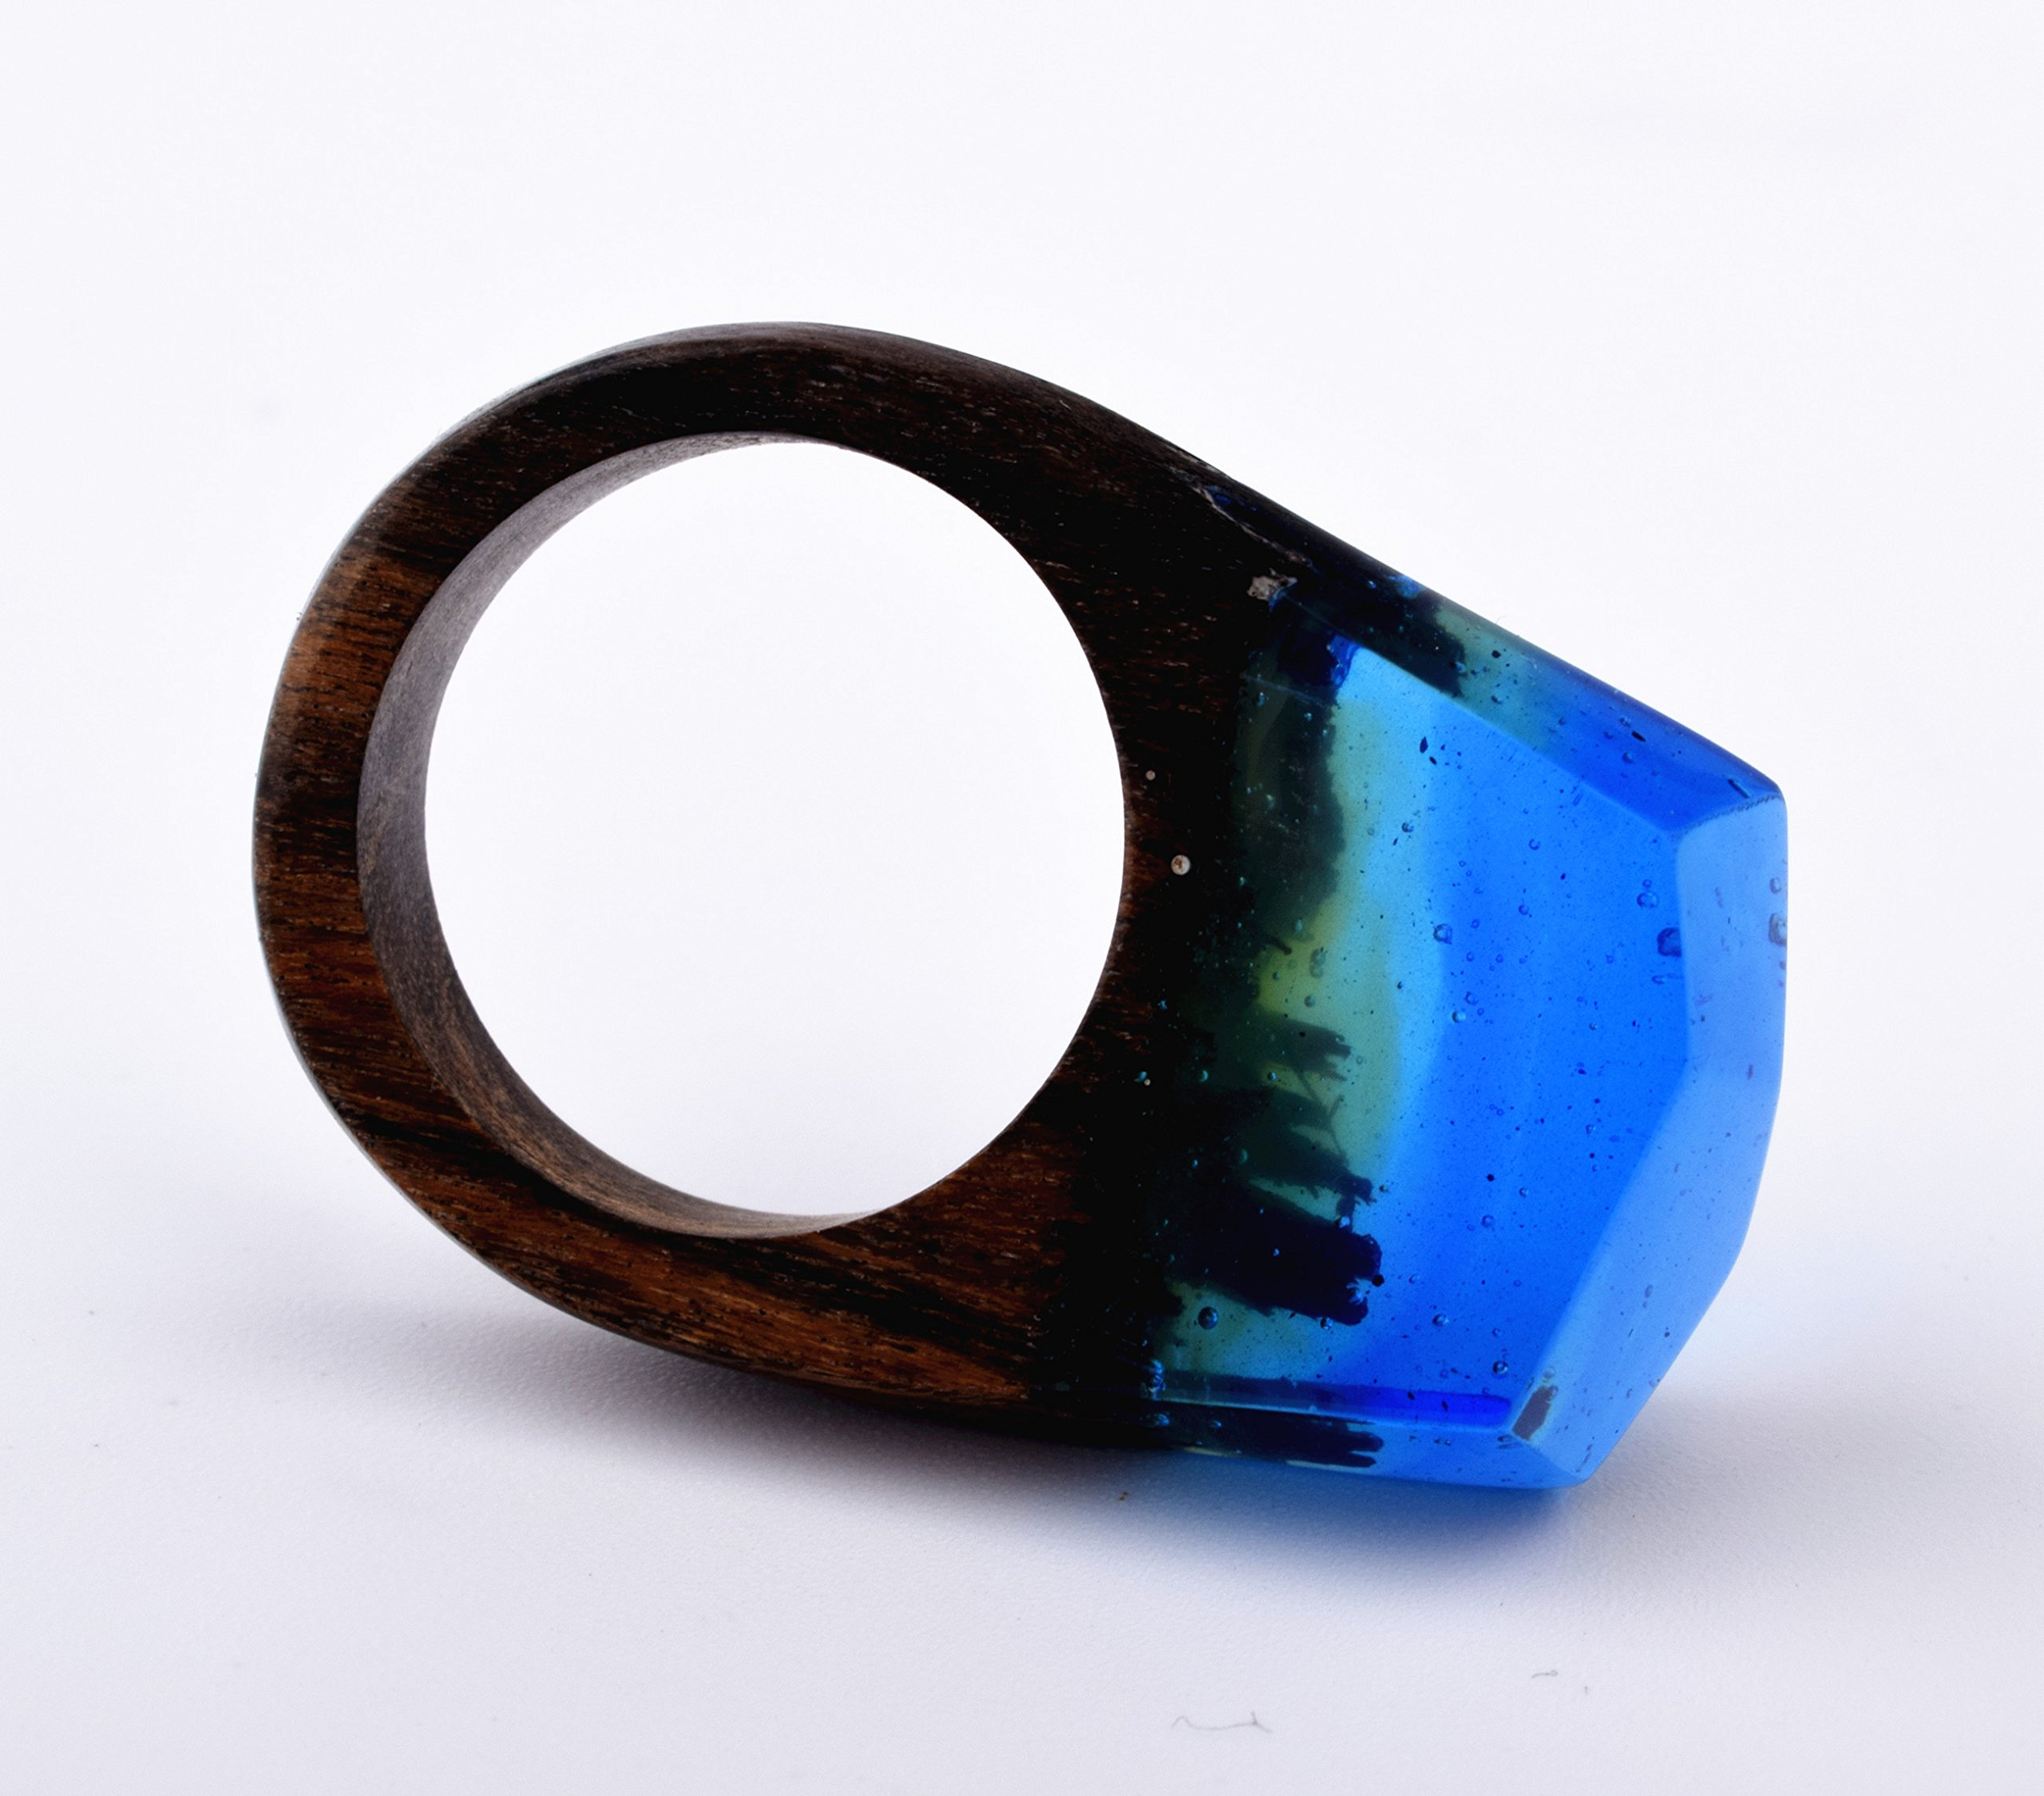 Heyou Love Handmade Wood Resin Ring With Nature Scenery Landscape Inside Jewelry by Heyou Love (Image #3)